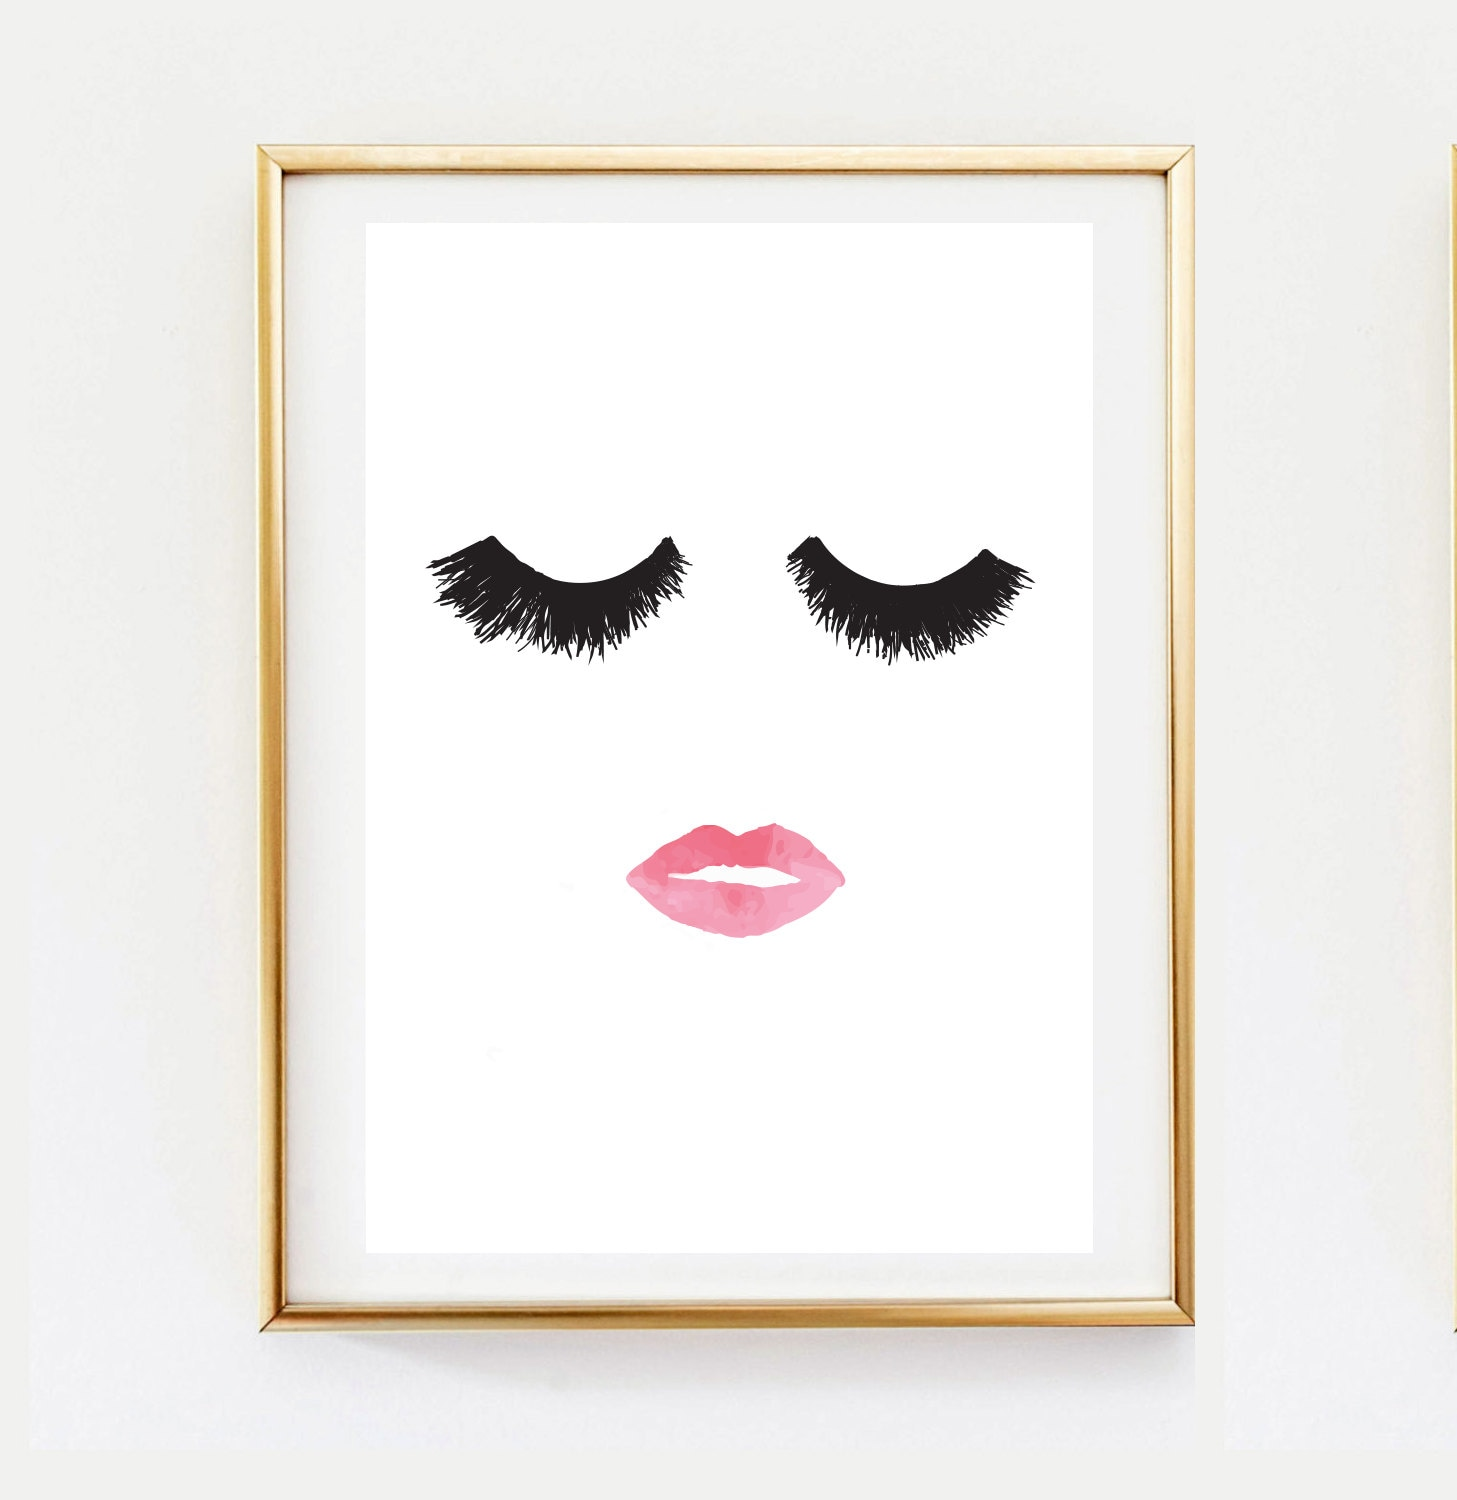 Makeup Print Wall Decor Home Decor Wall Art Minimalist